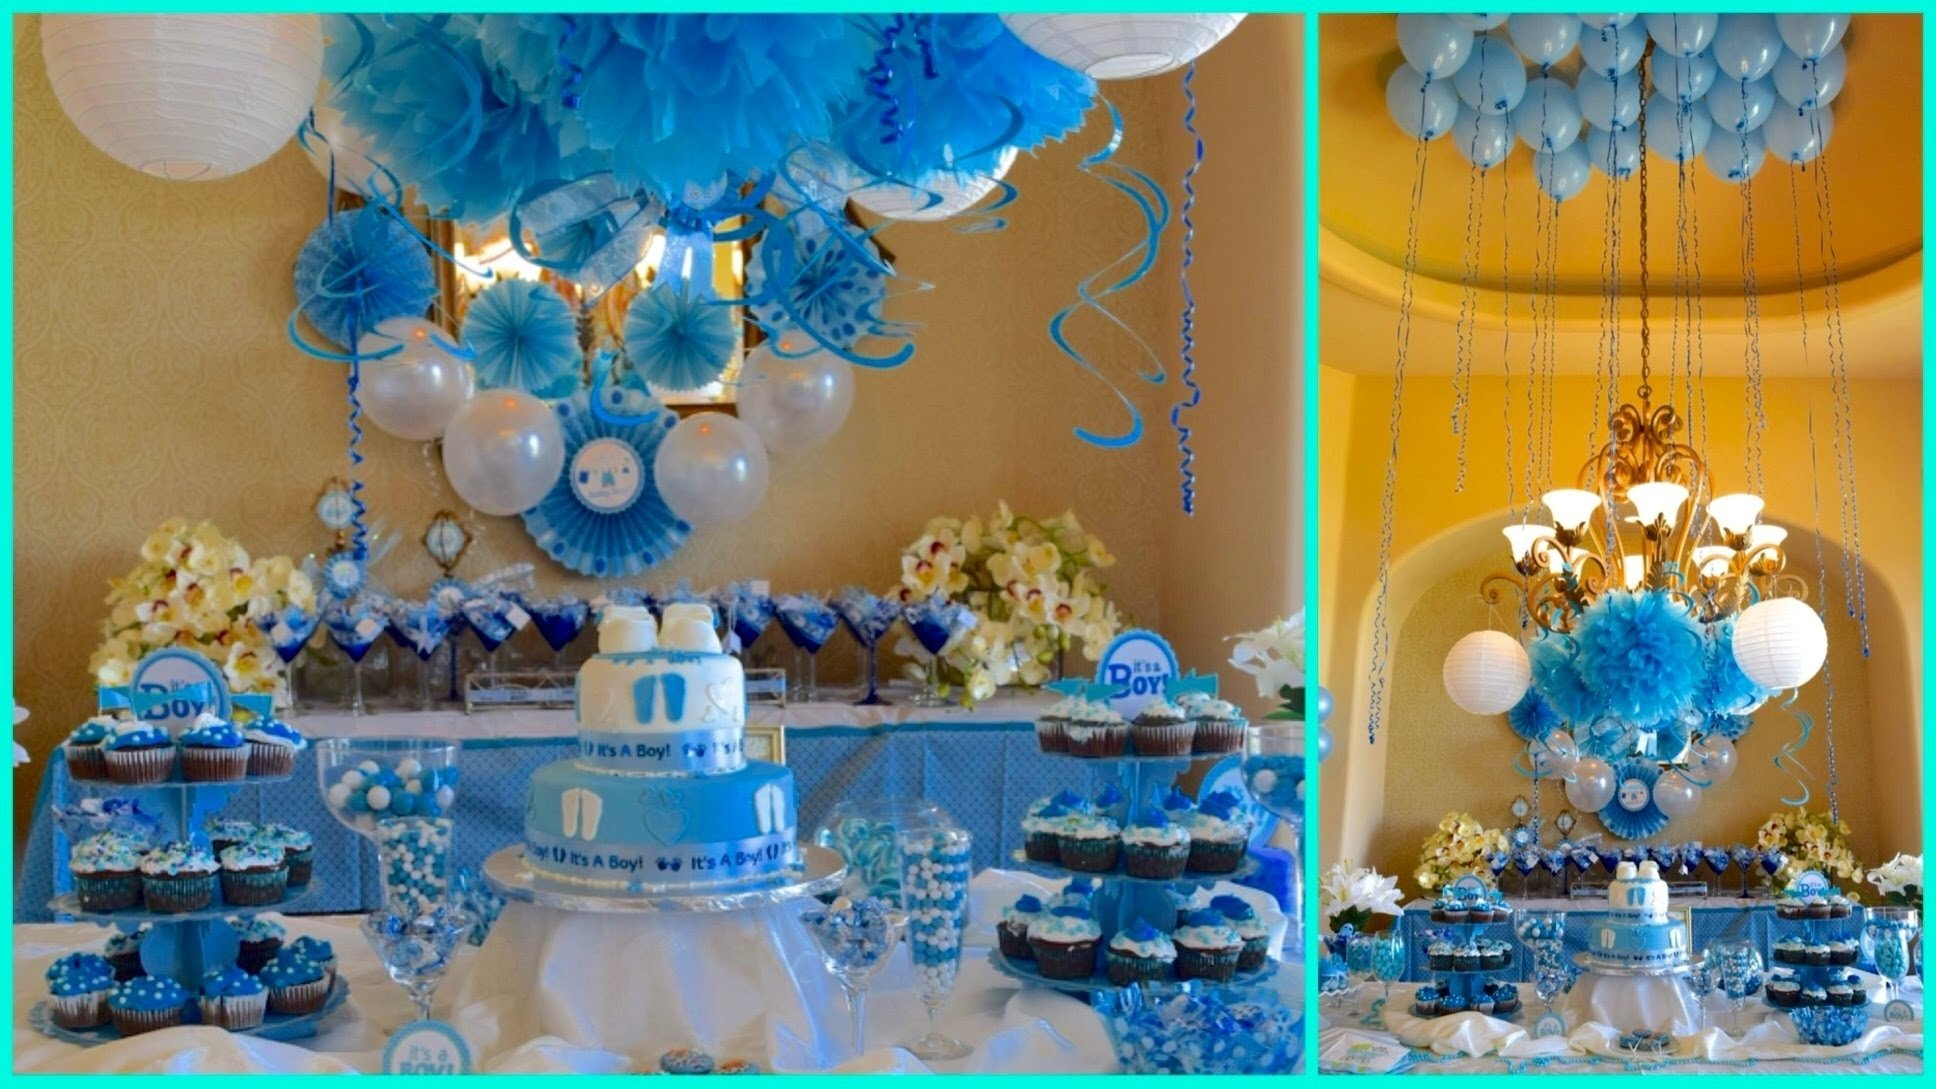 10 Fabulous Boy Baby Shower Theme Ideas baby shower ideas for boy blue theme youtube 17 2021